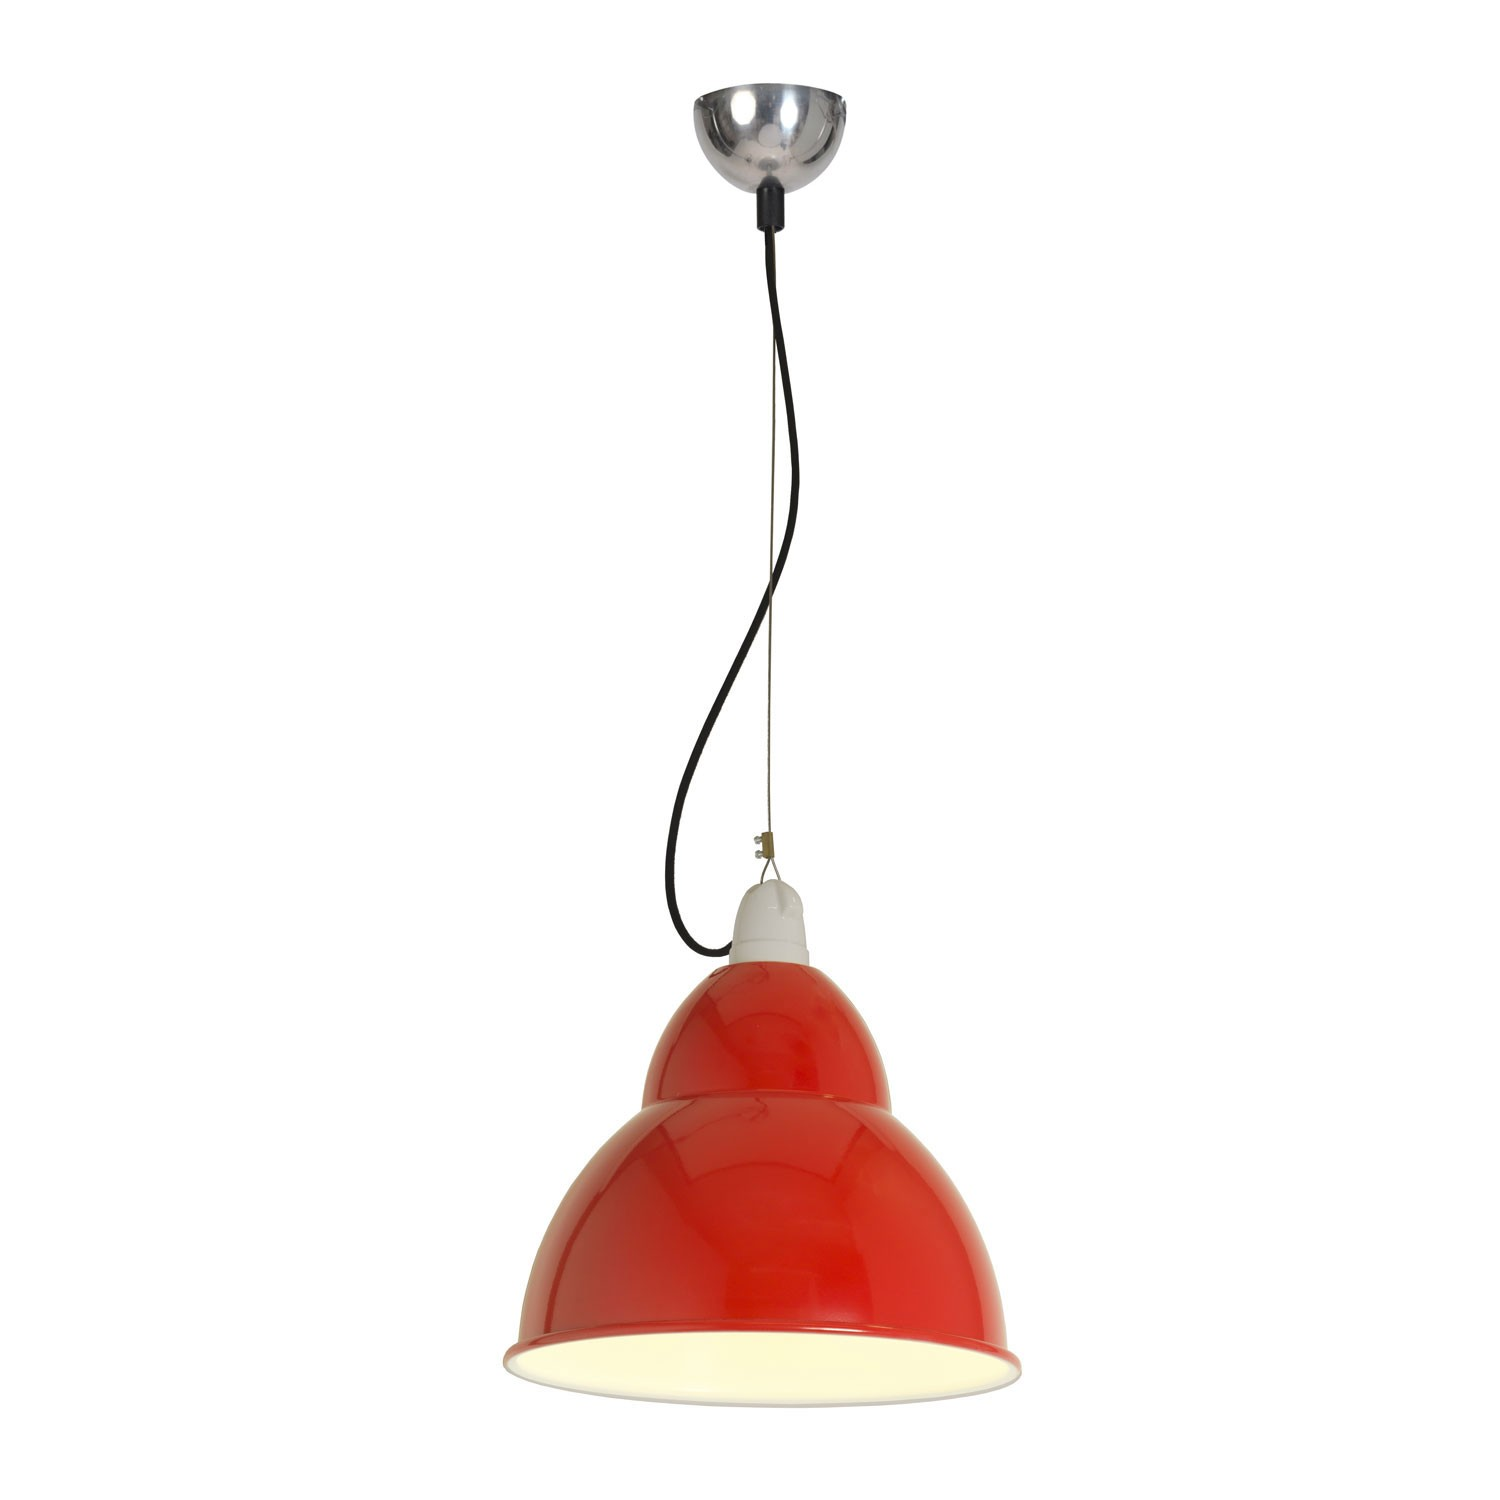 BB1 Pendant Light Red